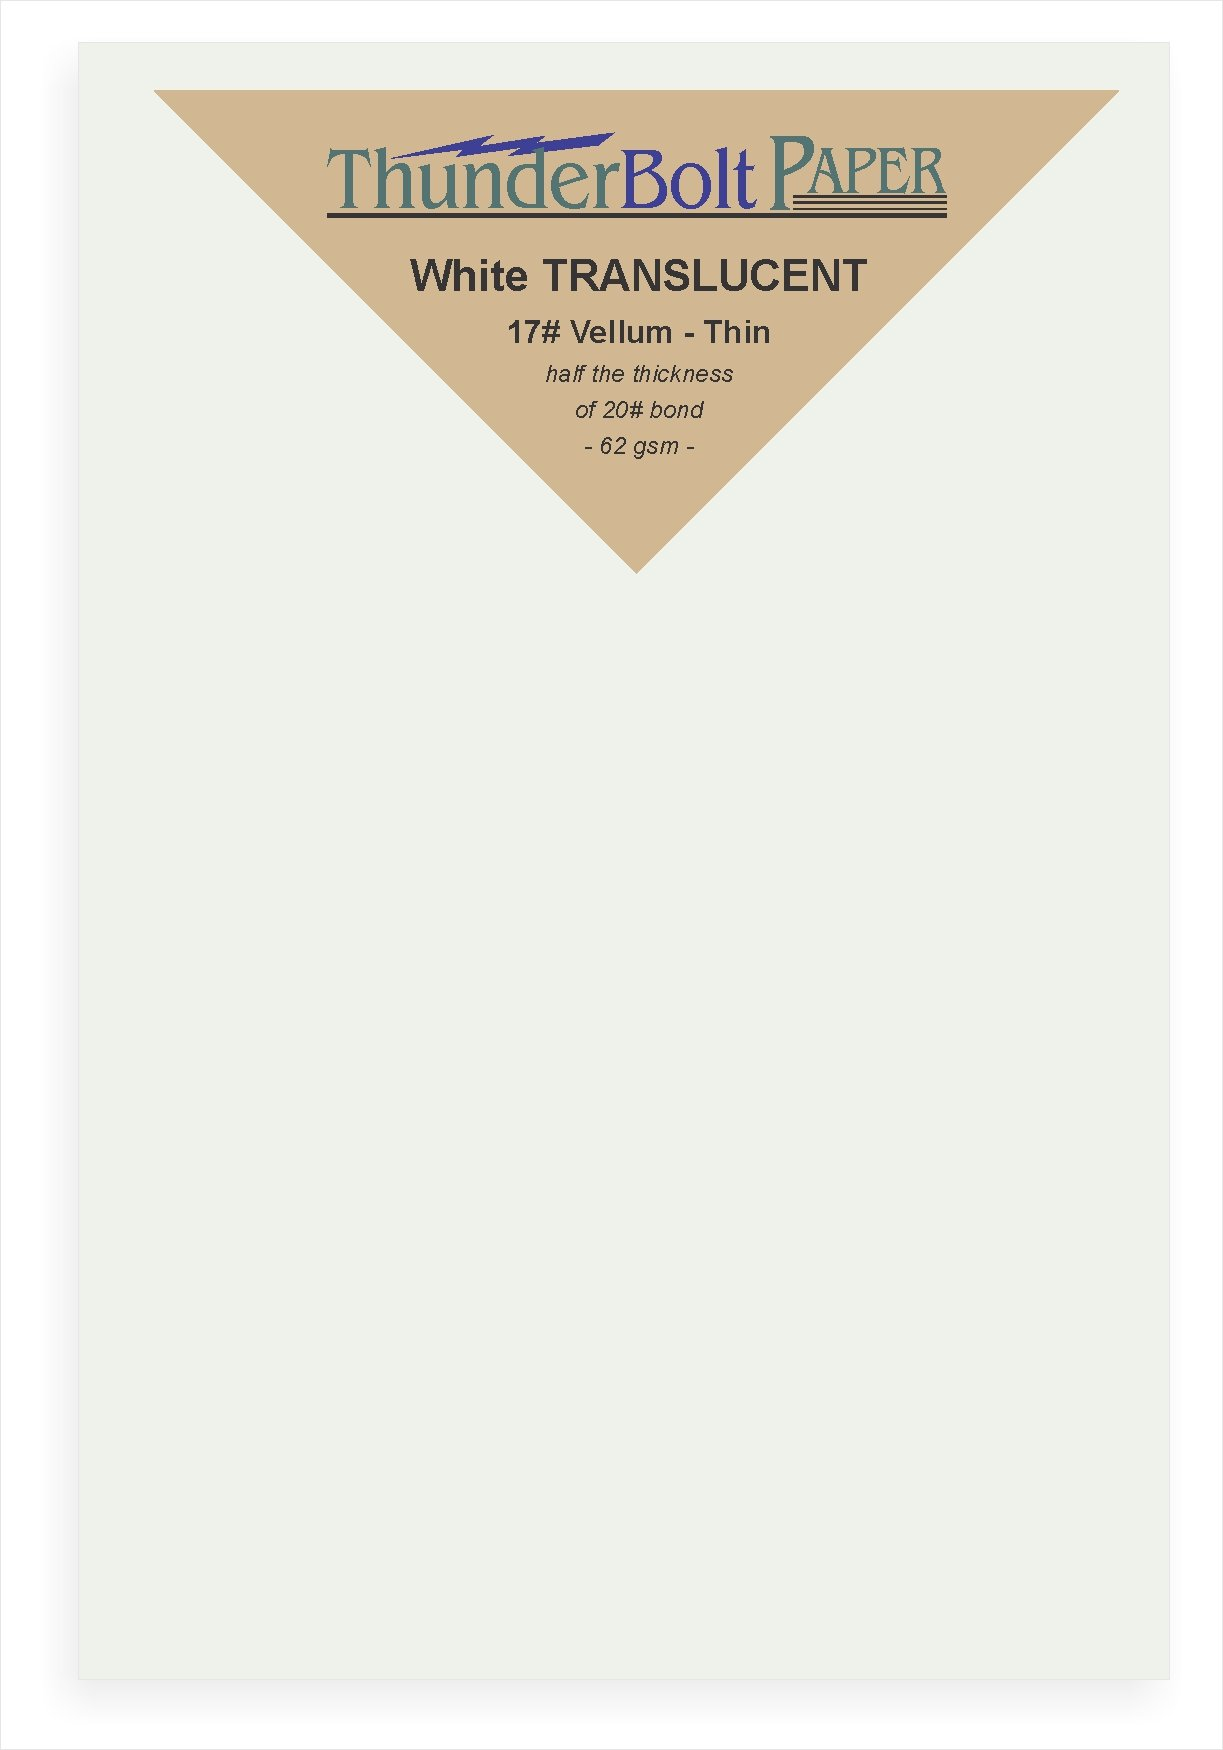 150 Soft Off-White Translucent 17# Thin Sheets - 4'' X 6'' (4X6 Inches) Photo|Card|Frame Size - 17 lb/pound Light Weight Fine Quality Paper - Tracing, Fun or Formal Use - Not a Clear Transparent